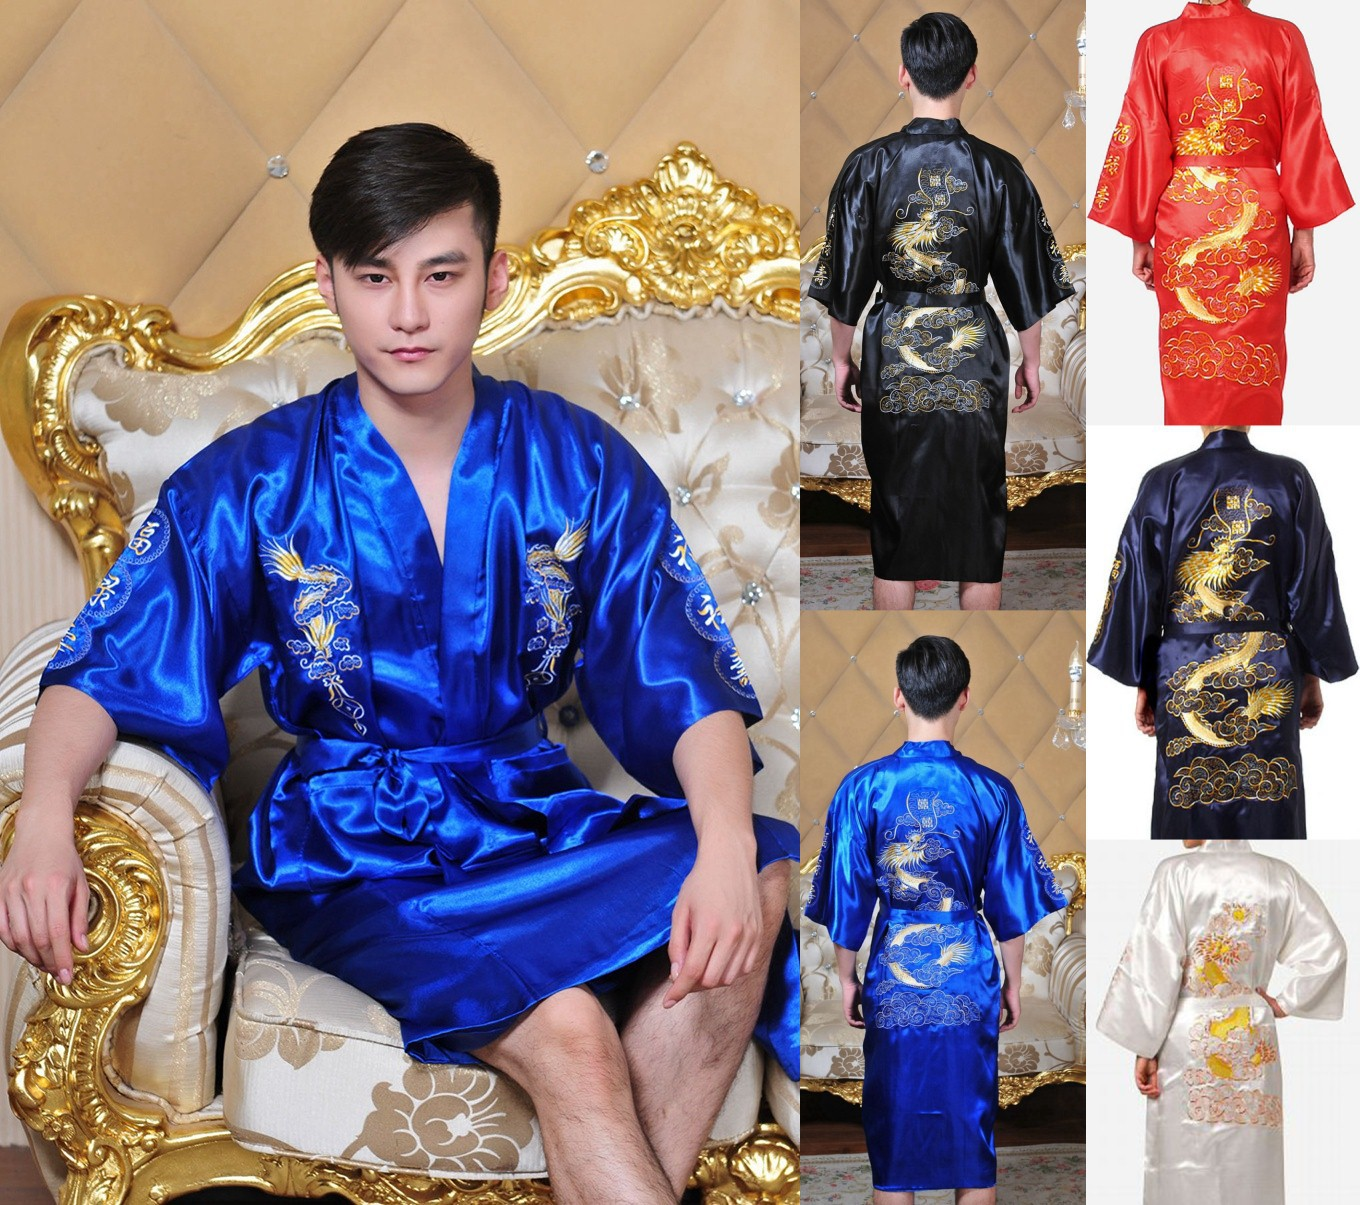 New Arrival Navy Blue Male Silk Robe Chinese Classic Embroidery Night Wear Traditional Kimono Gow 167